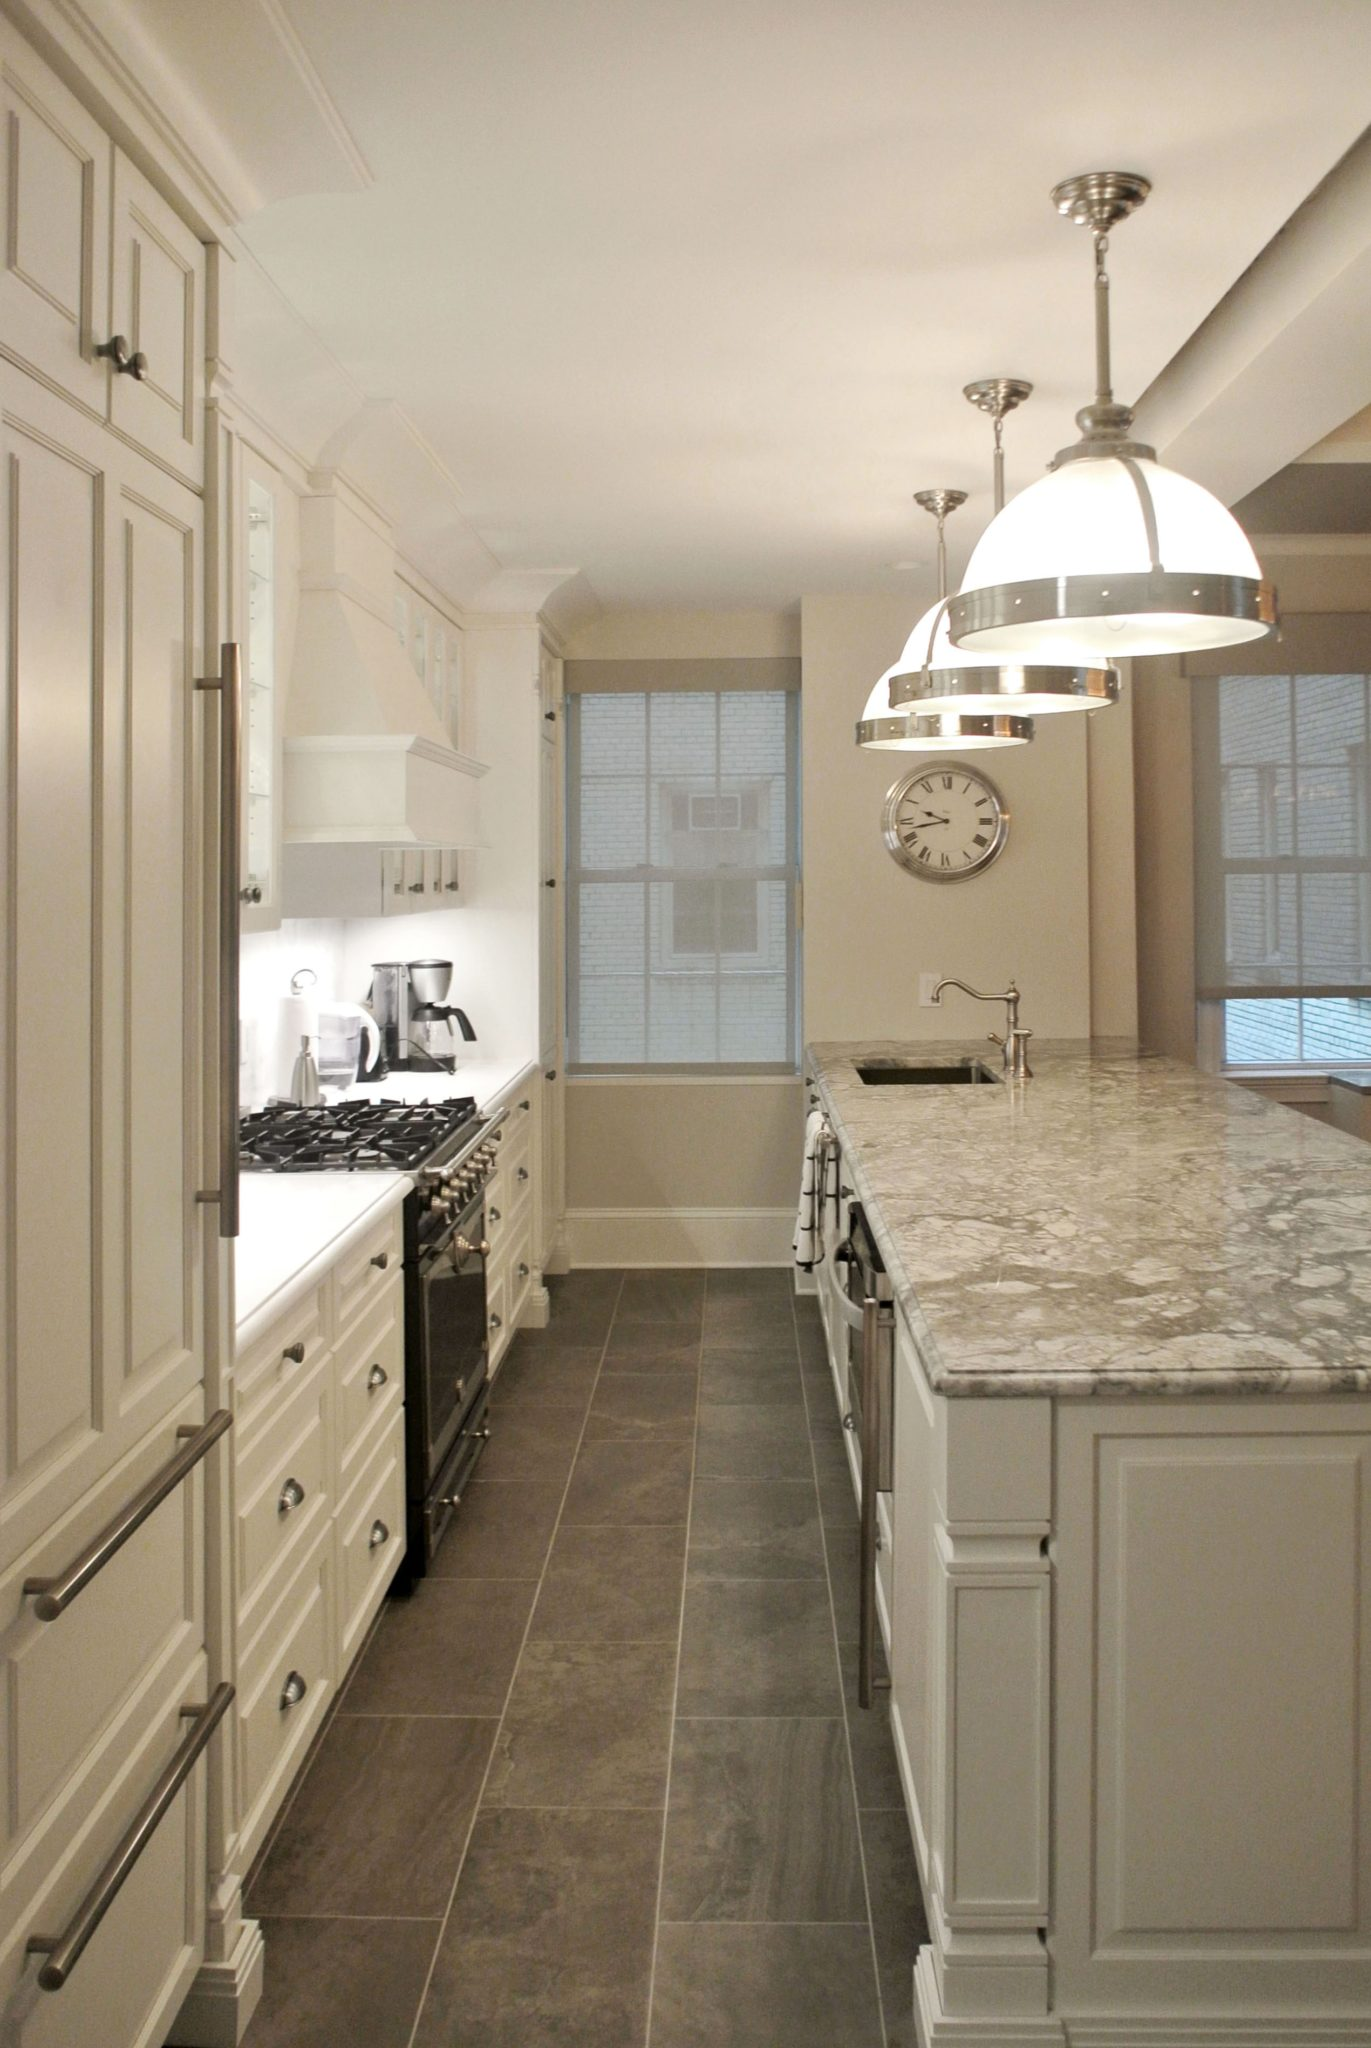 Beautiful pre-war kitchen transformation with custom island and cabinets by Paula McDonald Design Build & Interiors